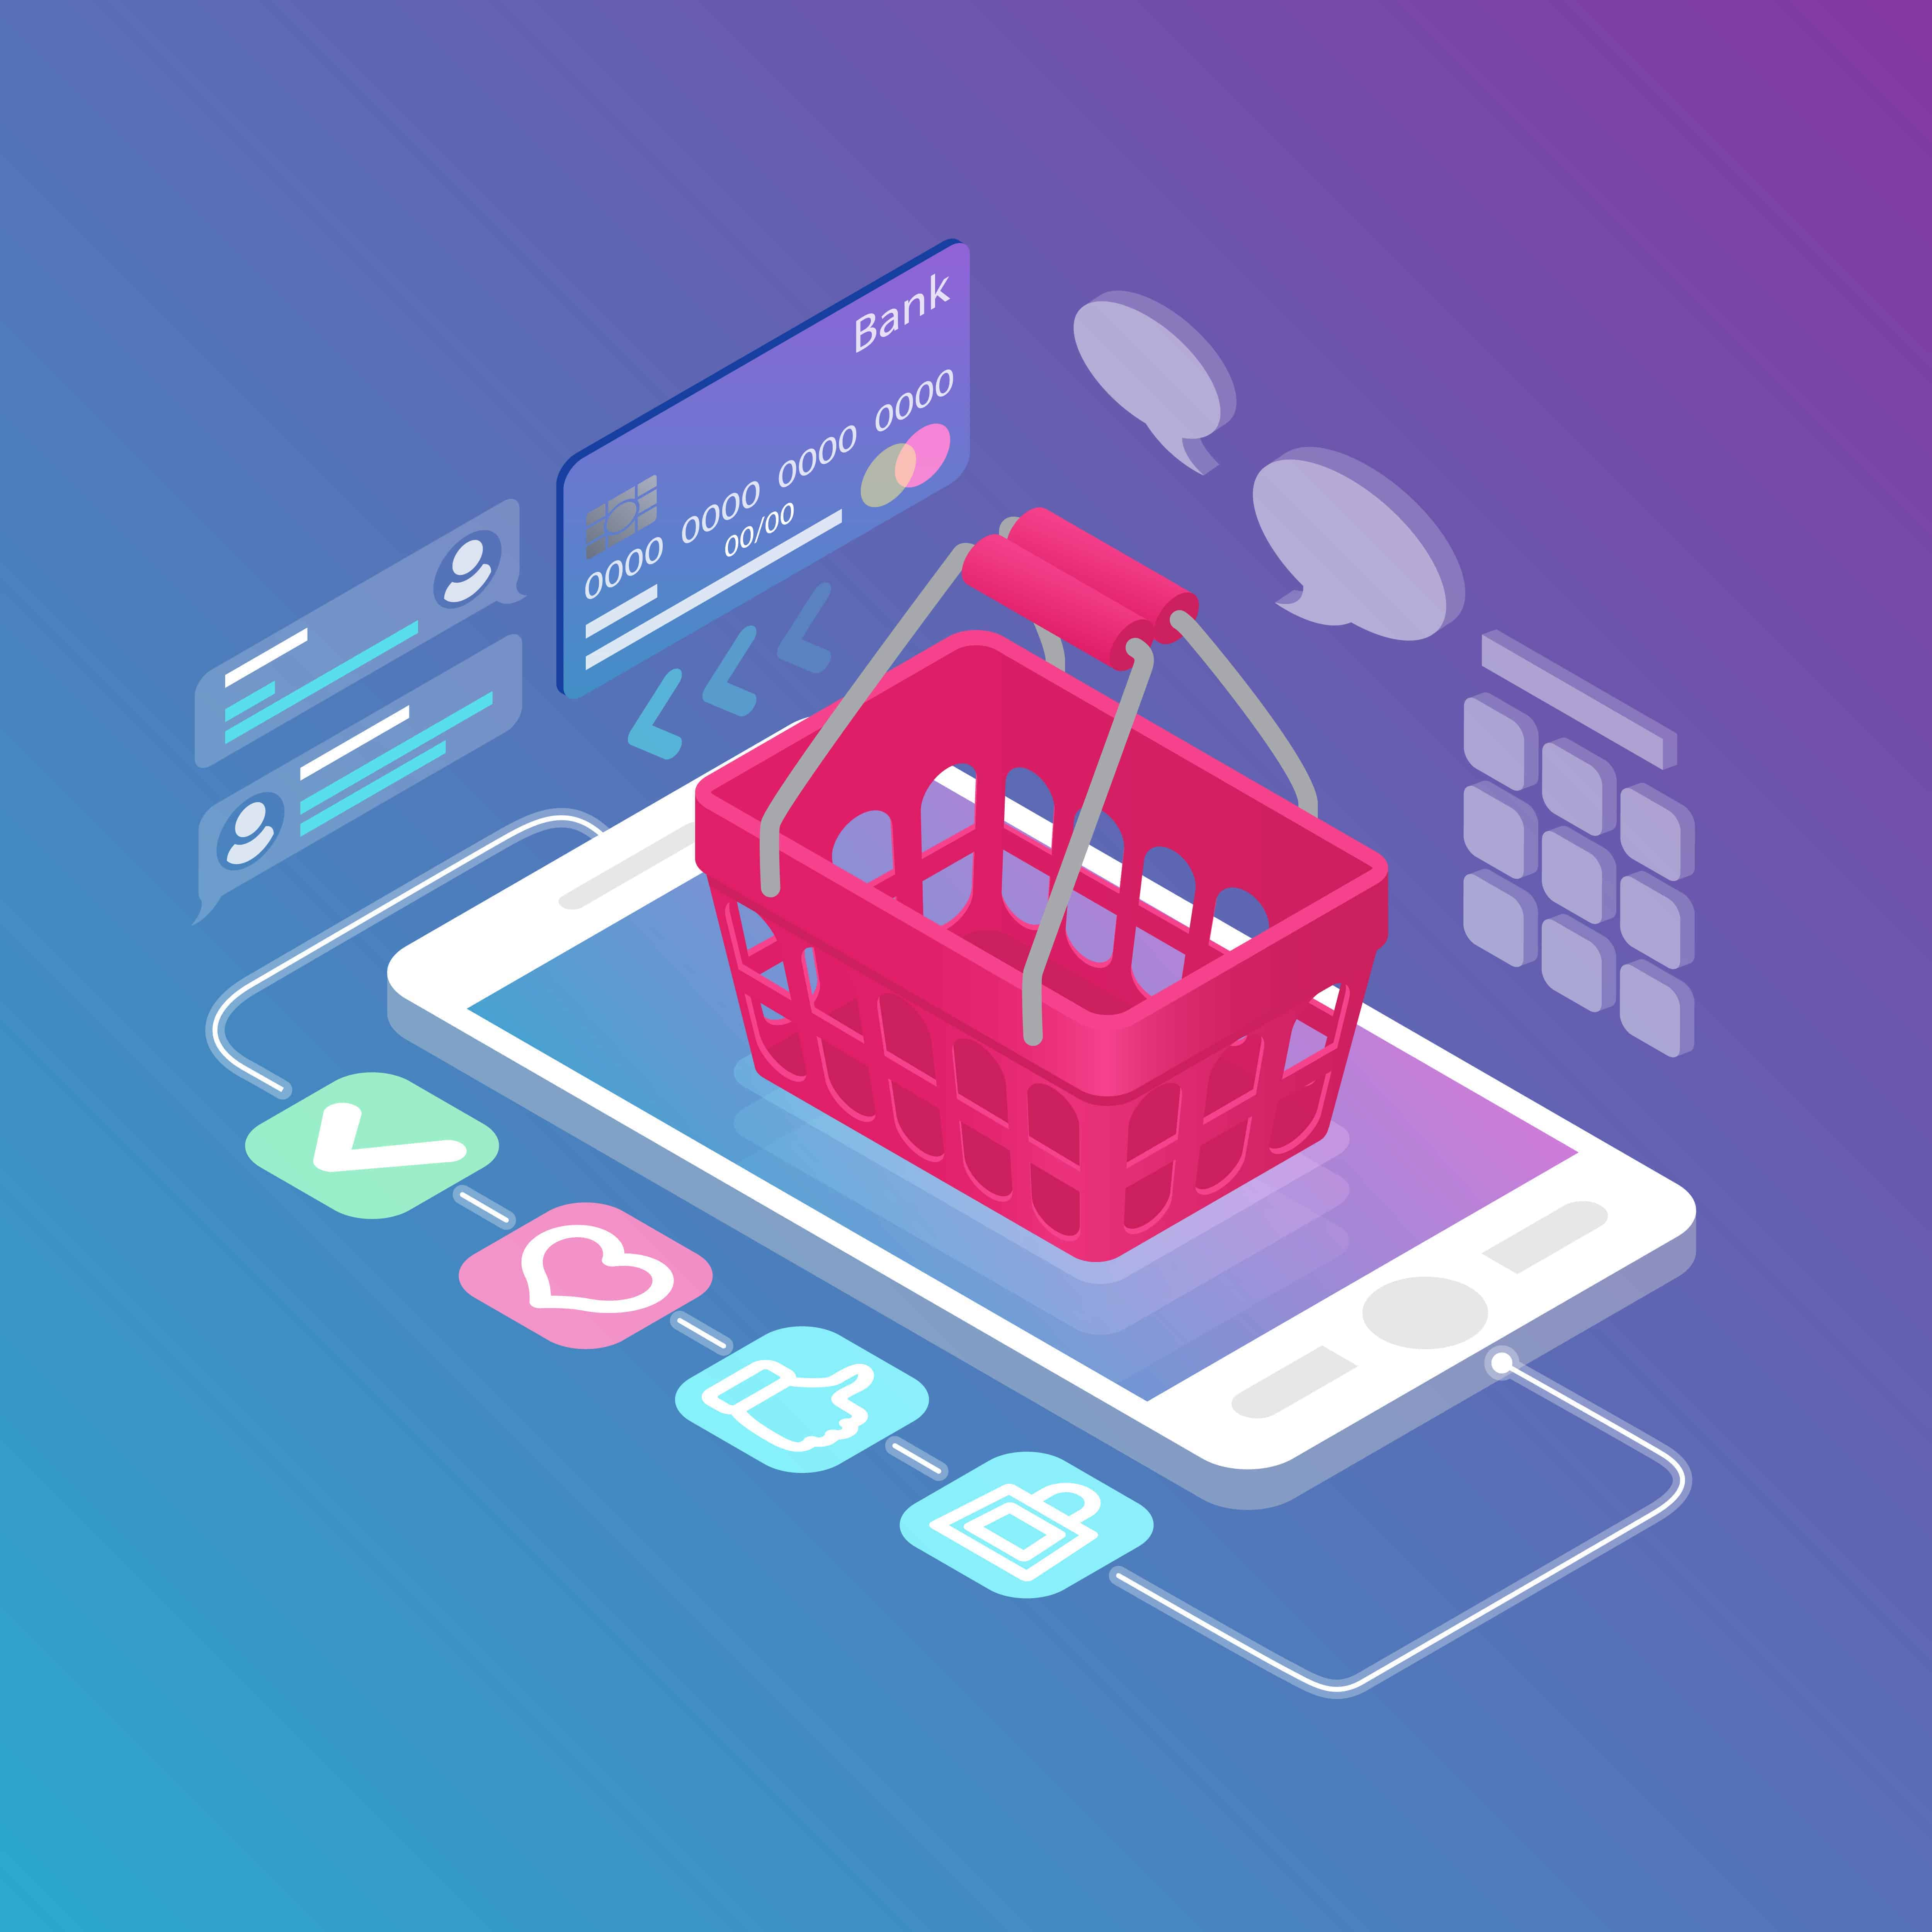 Ecommerce example with a shoping cart on a mobile phone screen - eCommerce and eShops